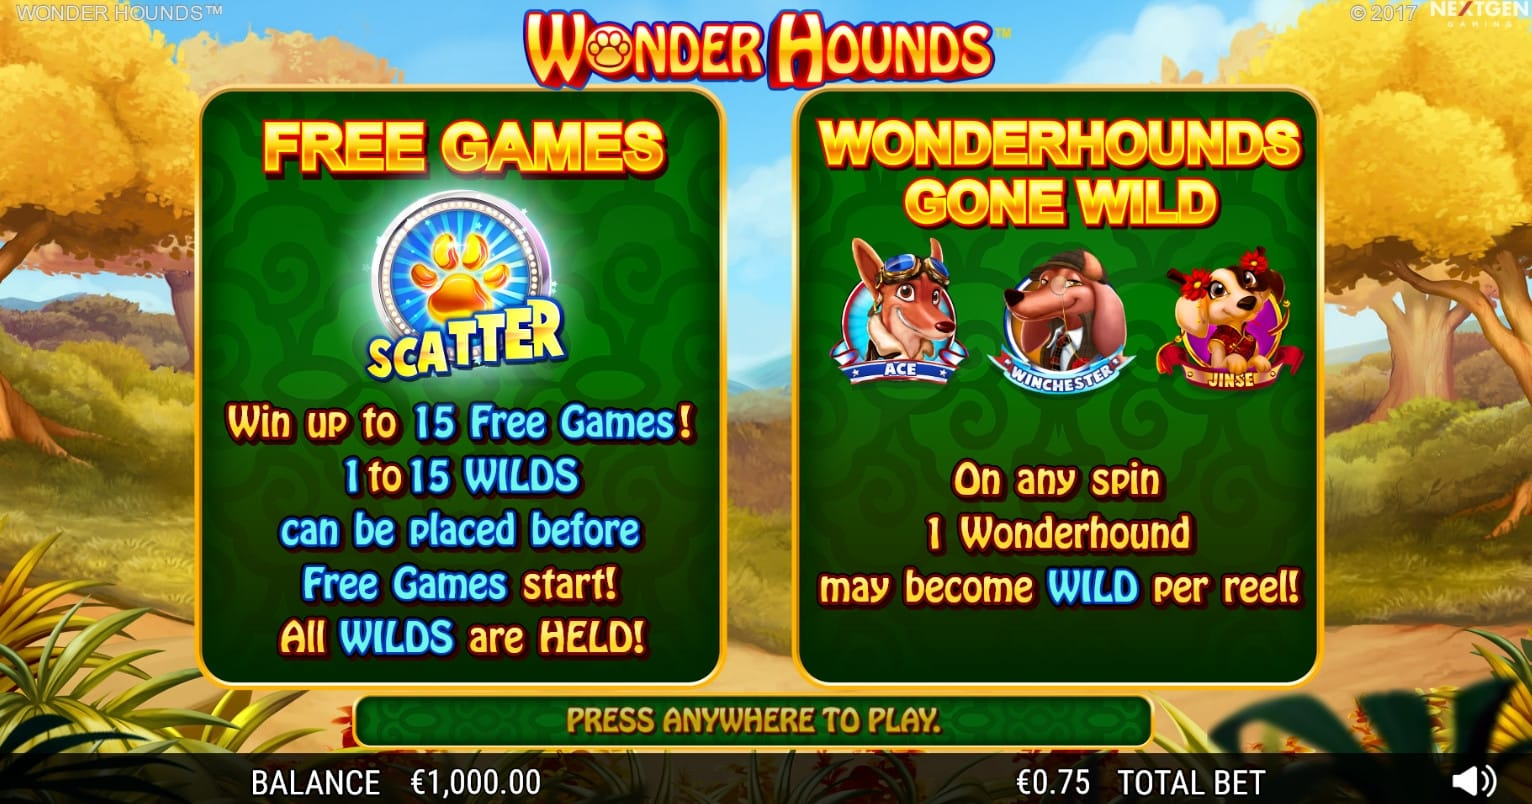 Wonder Hounds free spins